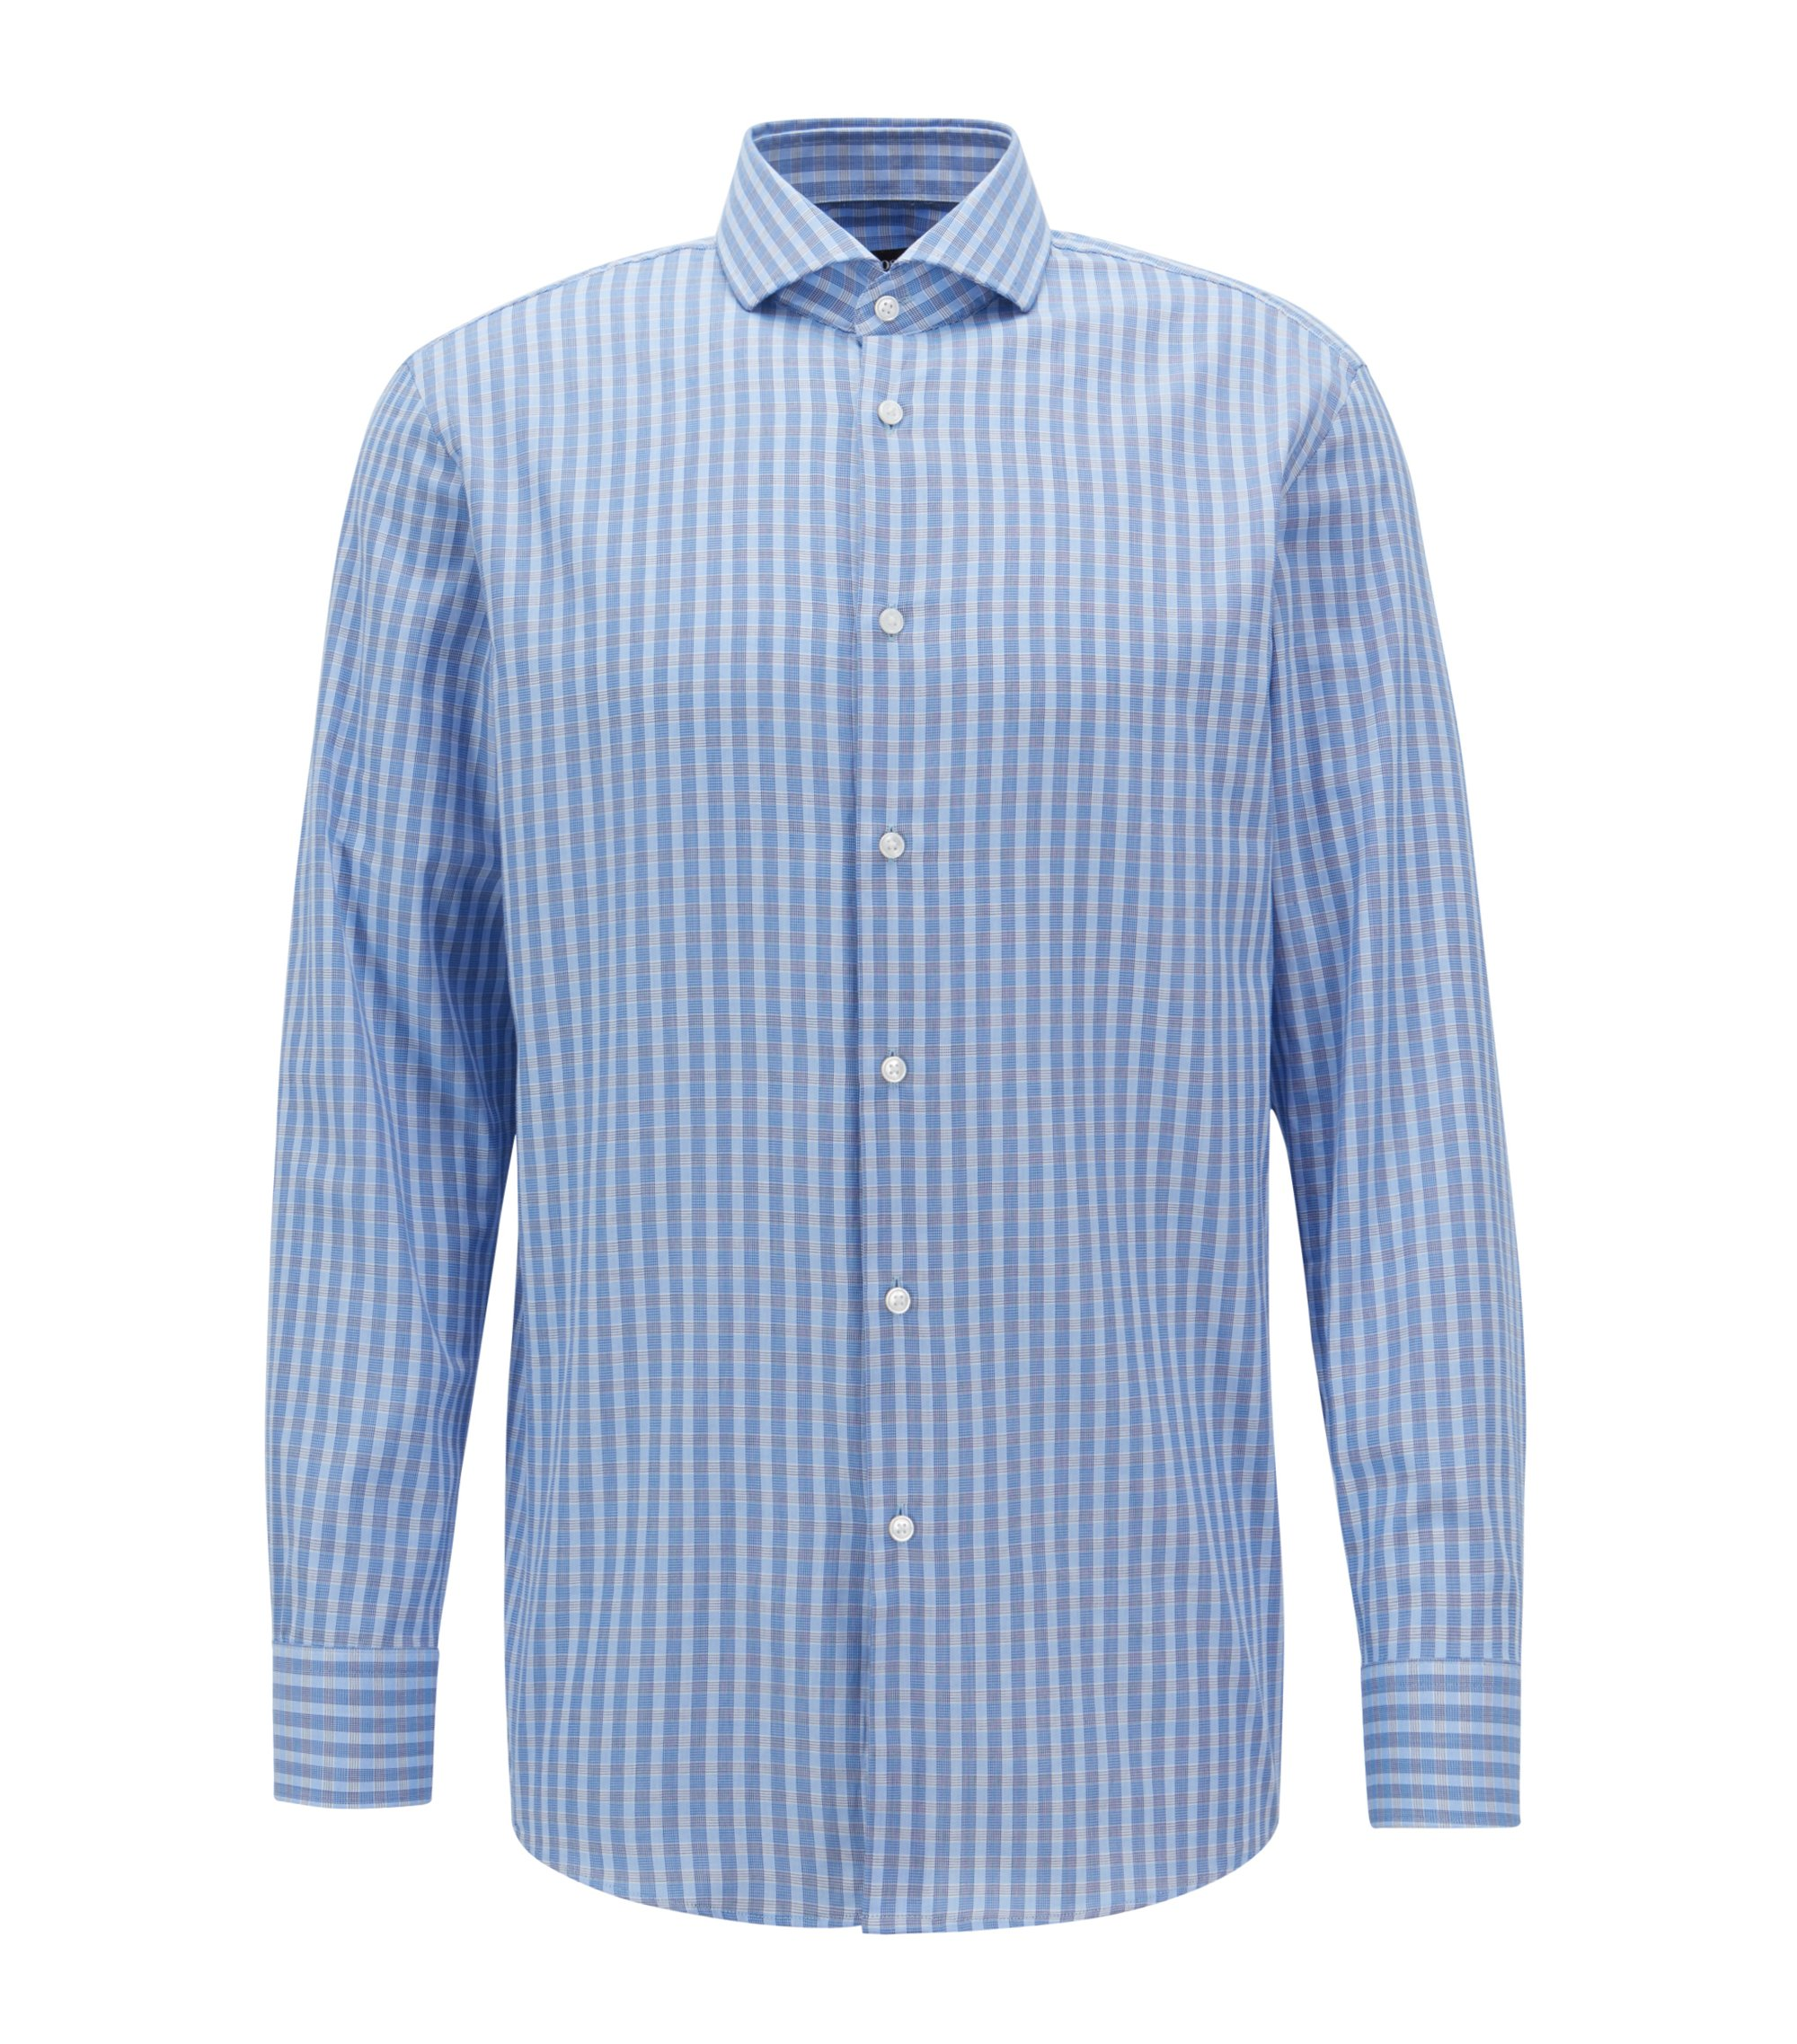 Slim-fit shirt in cotton twill with Vichy check pattern, Blue